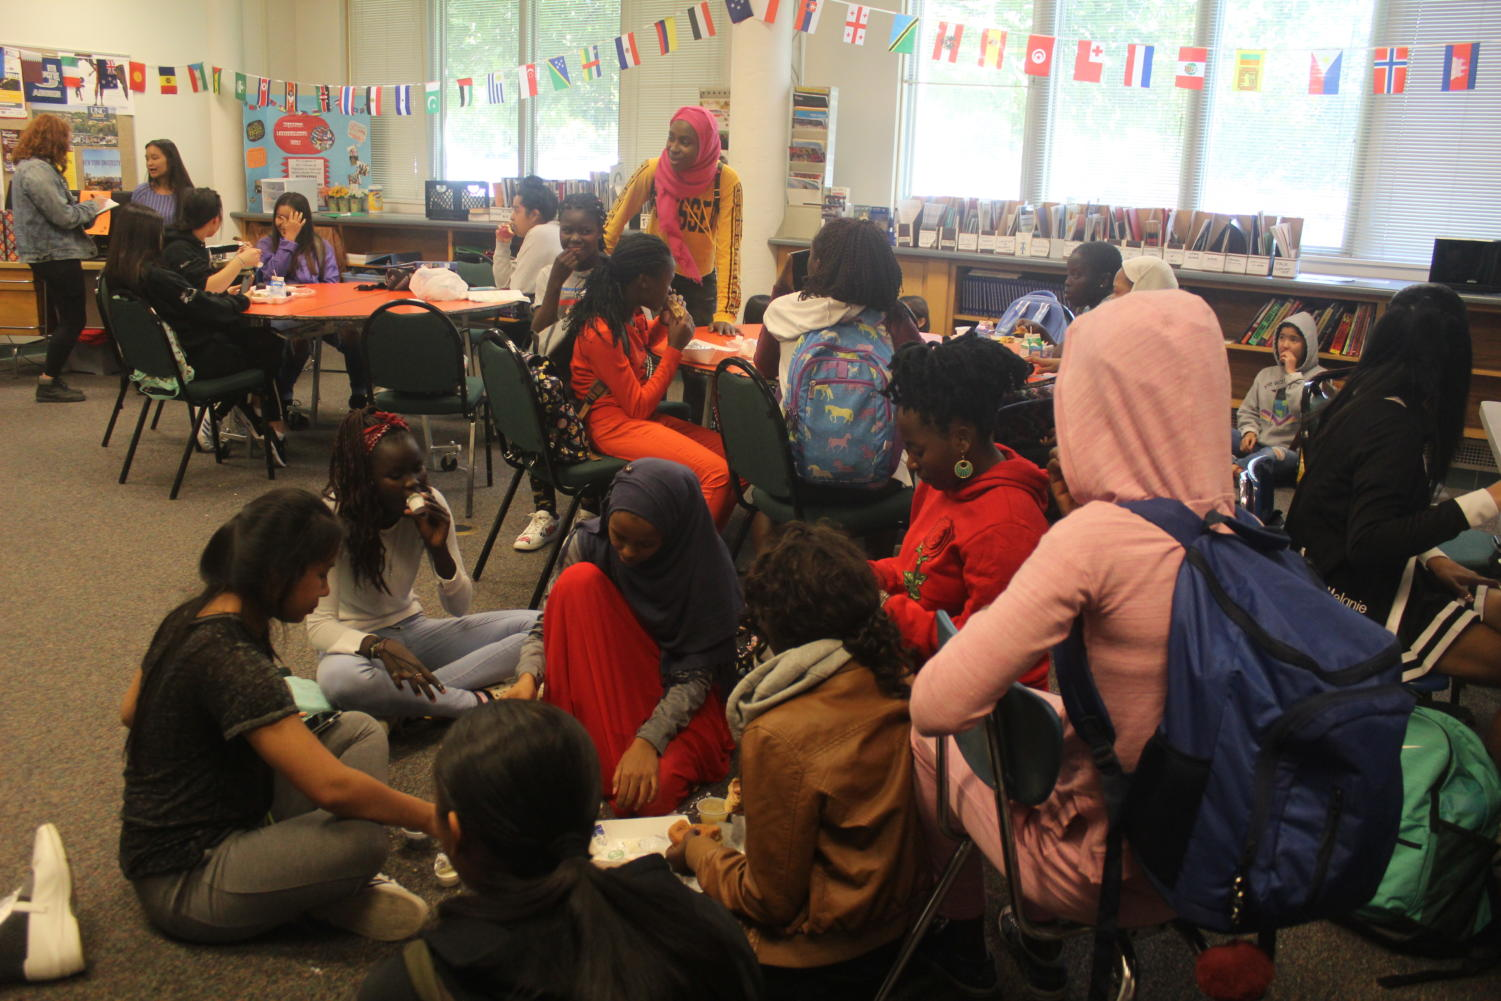 Some of the refugee students at Highland gather together in room D106